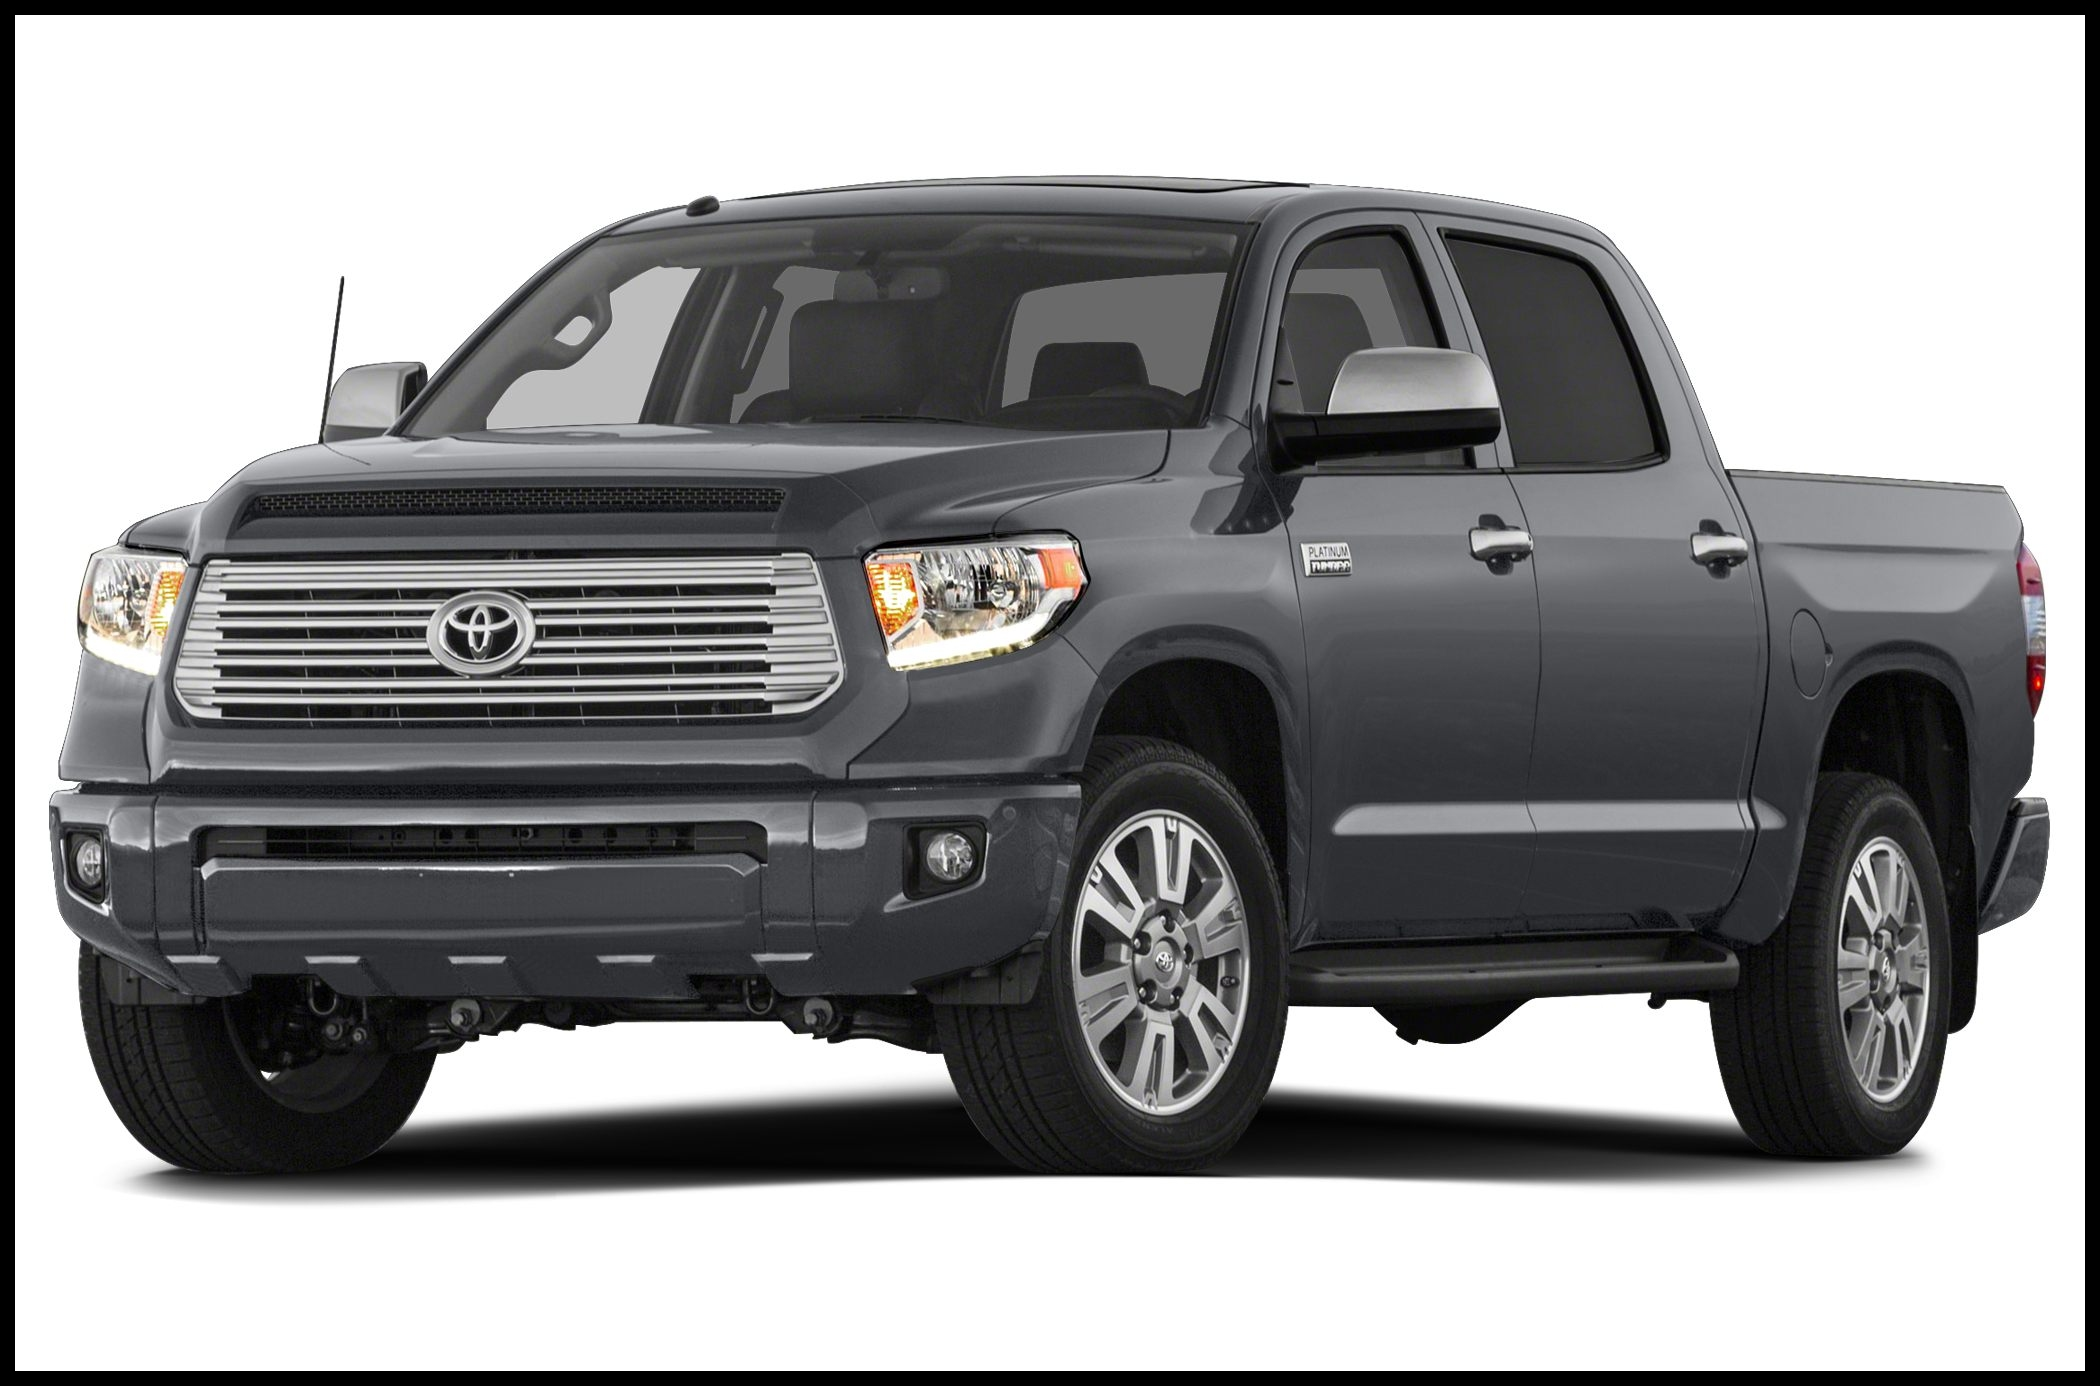 2014 Toyota Tundra Platinum 5 7L V8 4x2 Crew Max 5 6 ft box 145 7 in WB Pricing and Options